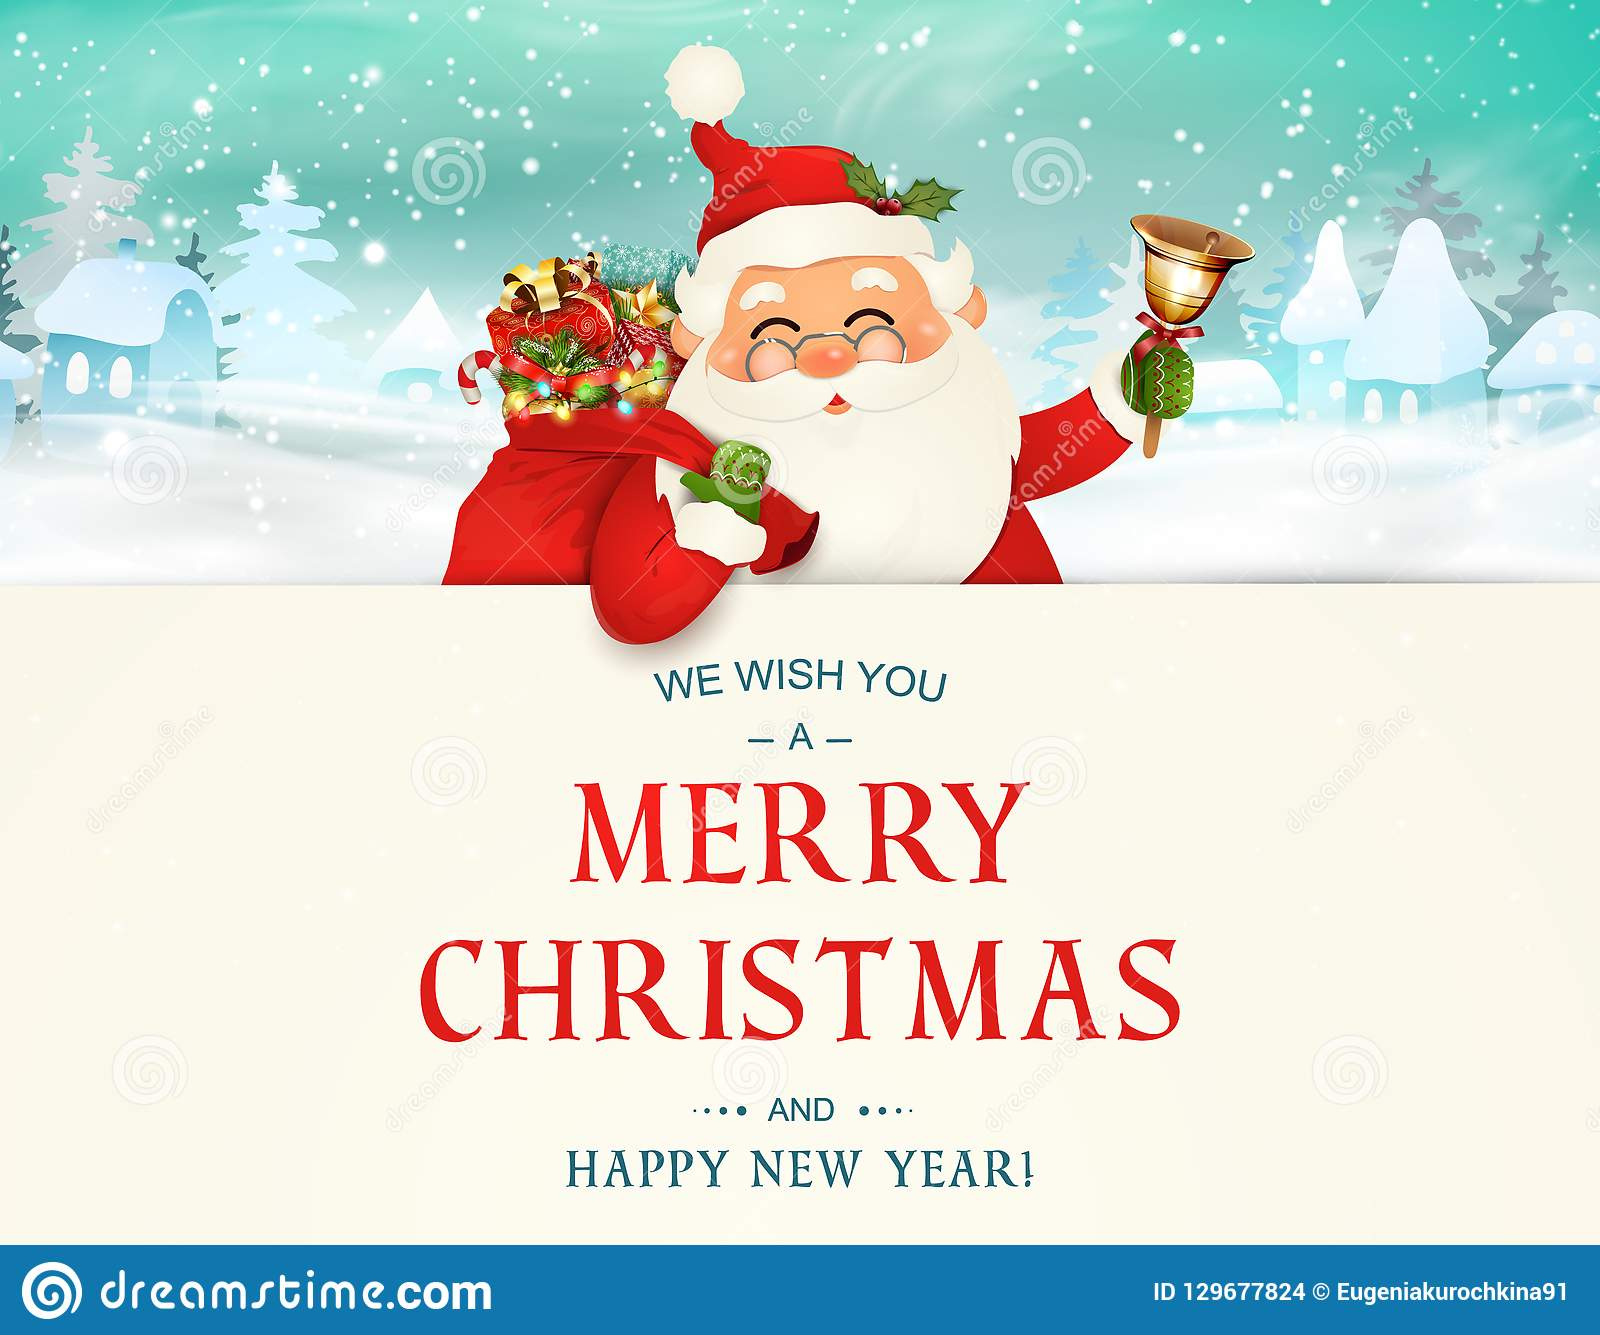 We Wish You A Merry Christmas Happy New Year Santa Claus Character